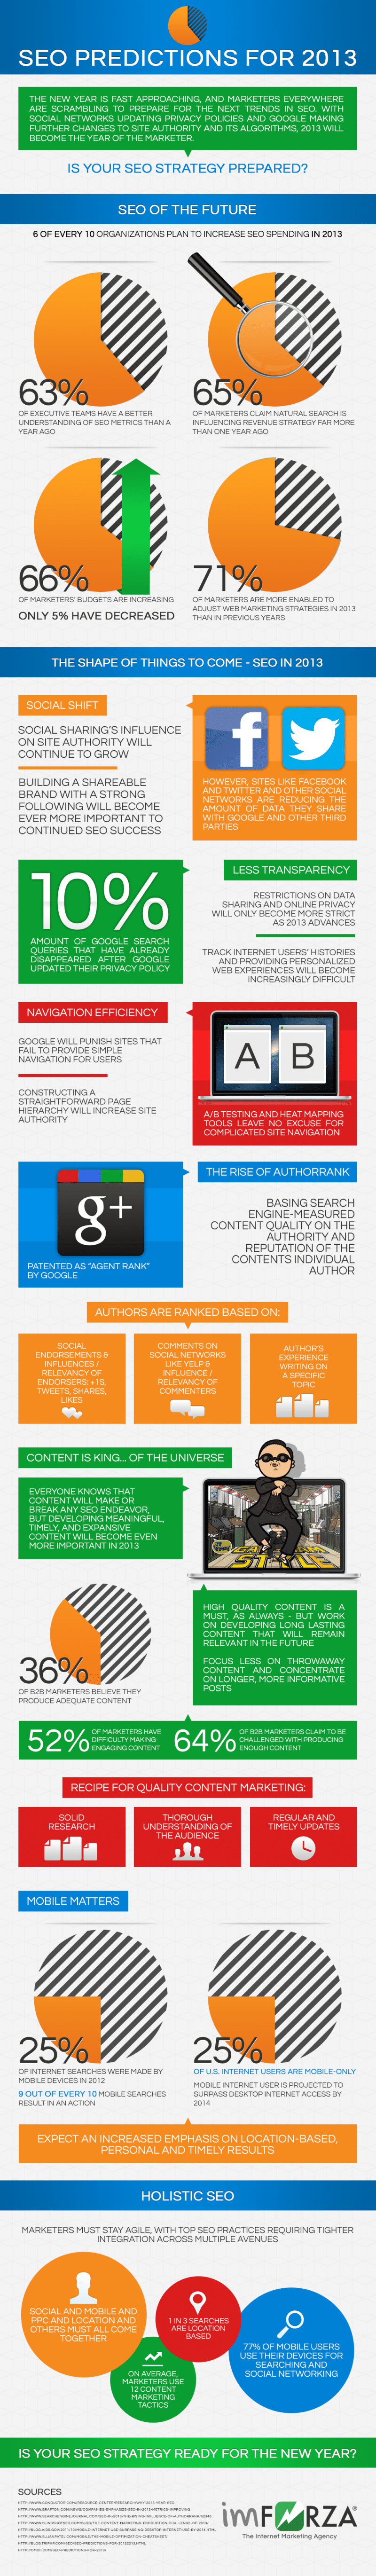 seo-predictions-for-2013-infographic